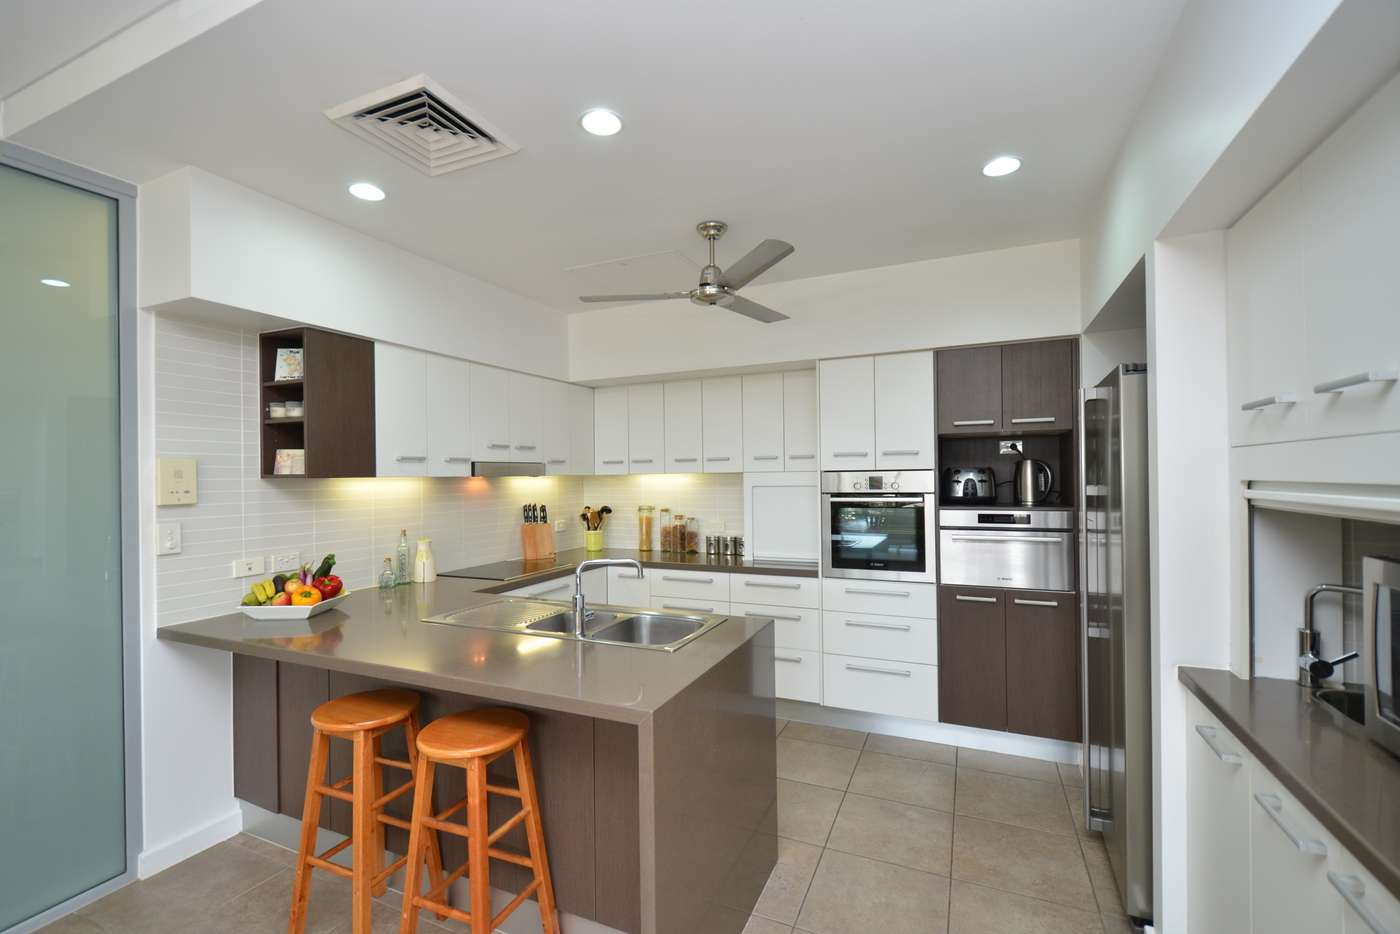 Fifth view of Homely apartment listing, 55/45-53 Gregory Street, North Ward, North Ward QLD 4810